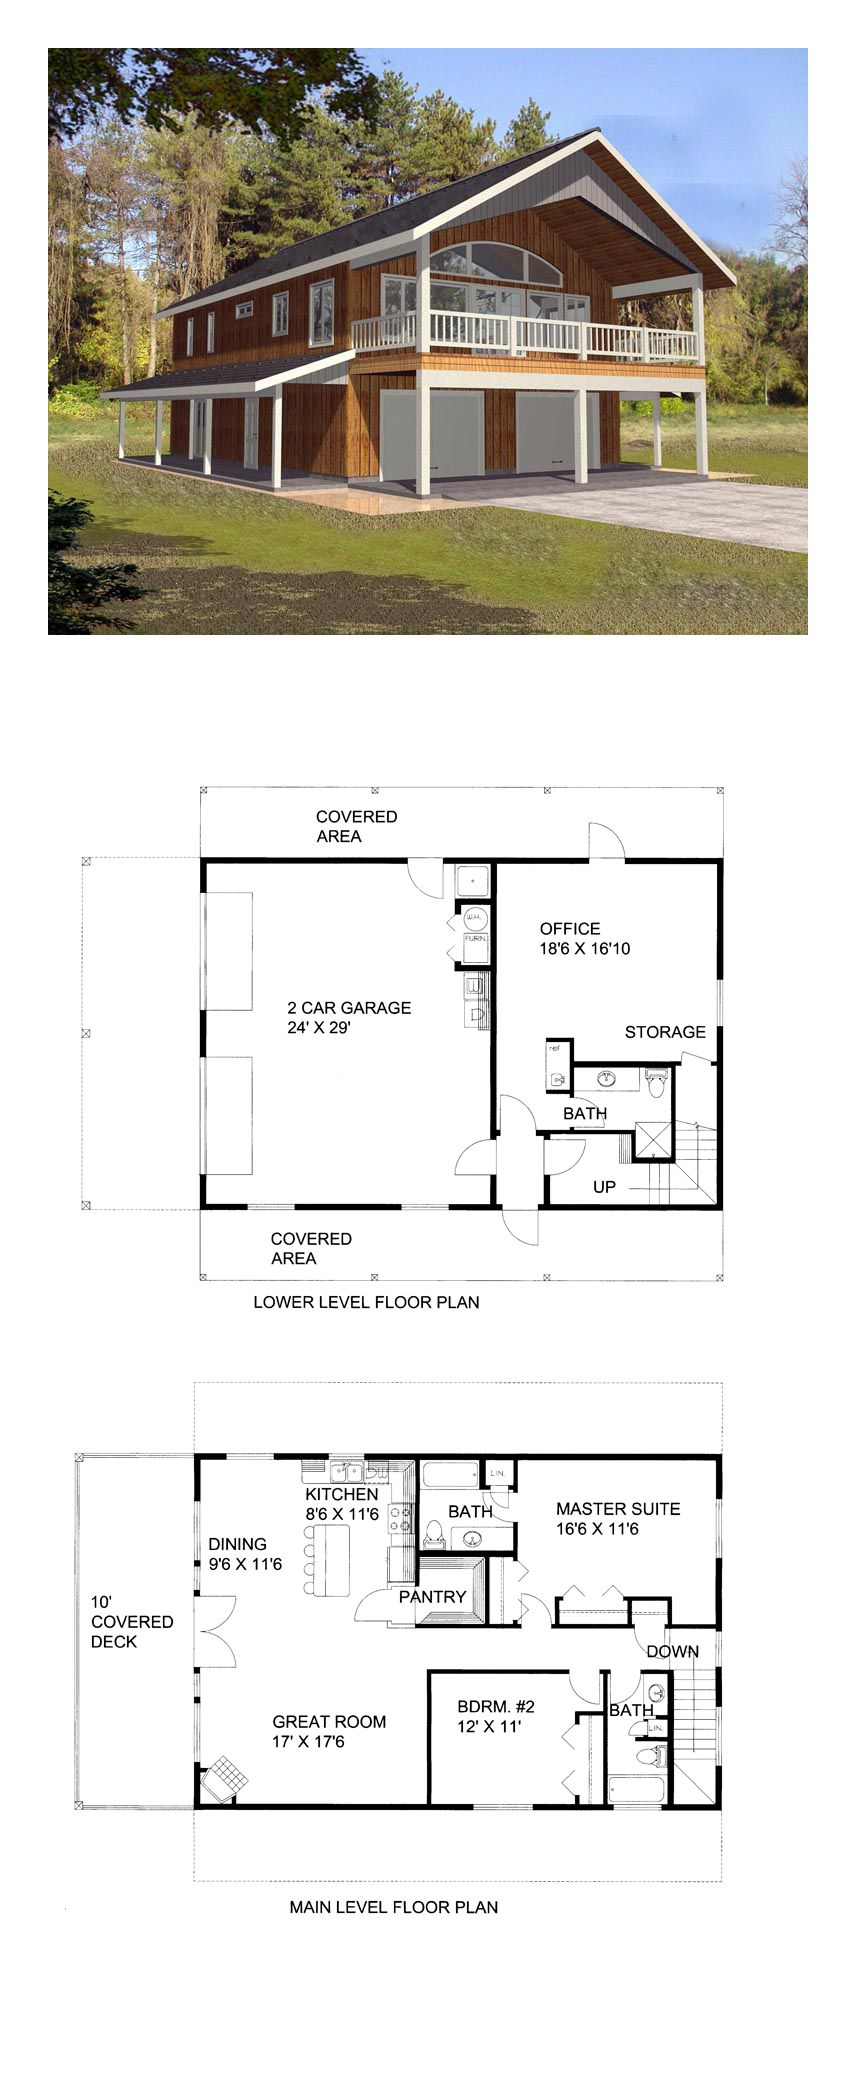 Garage apartment plan 85372 total living area 1901 sq for Garage apartment blueprints